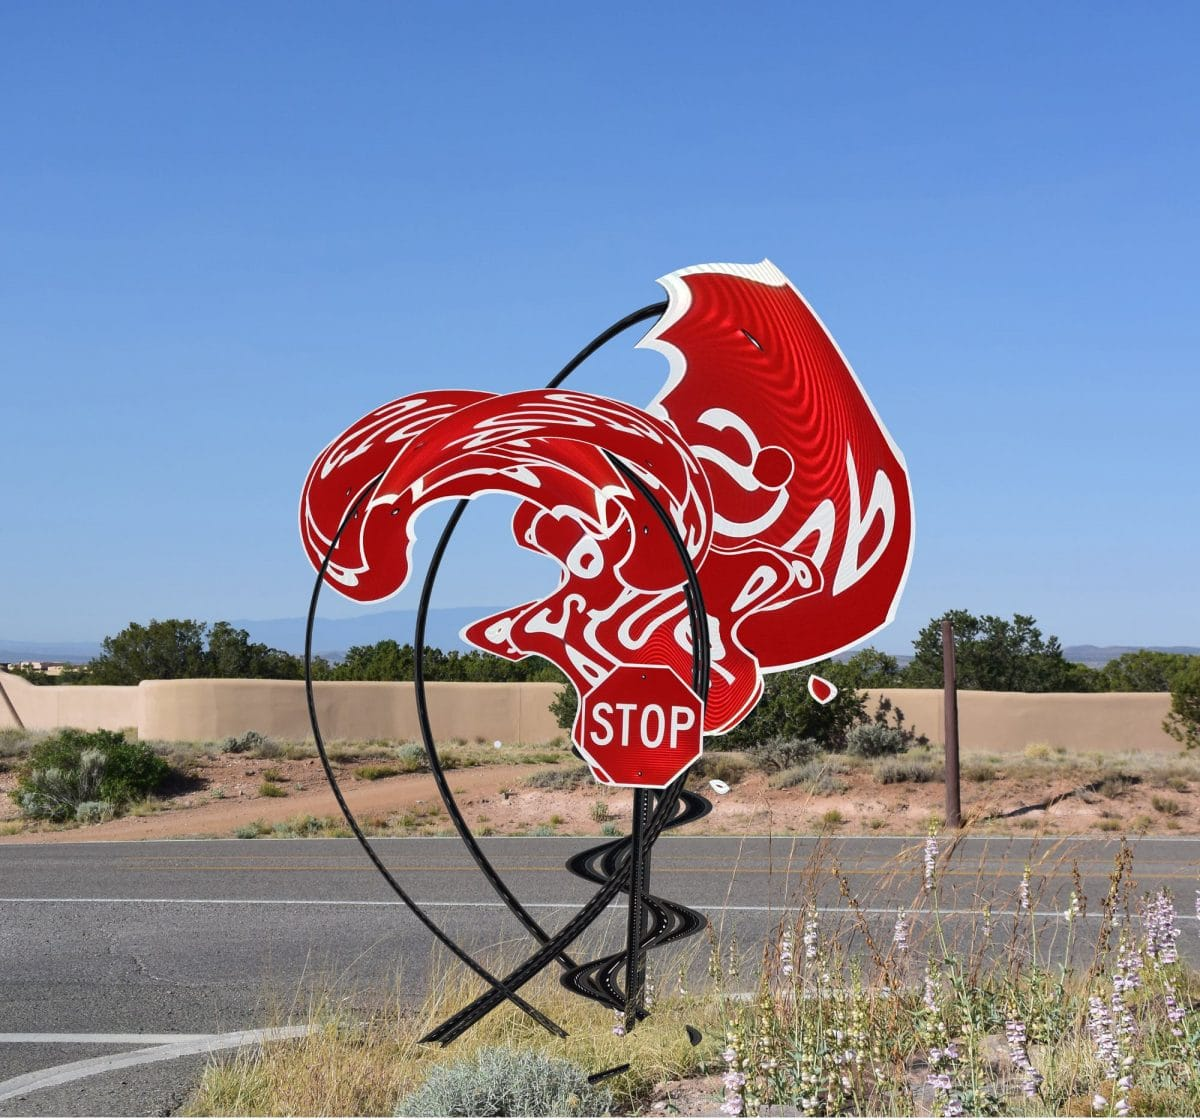 Intersection, Michael Jantzen, Road closed, art, culture, roadsigns